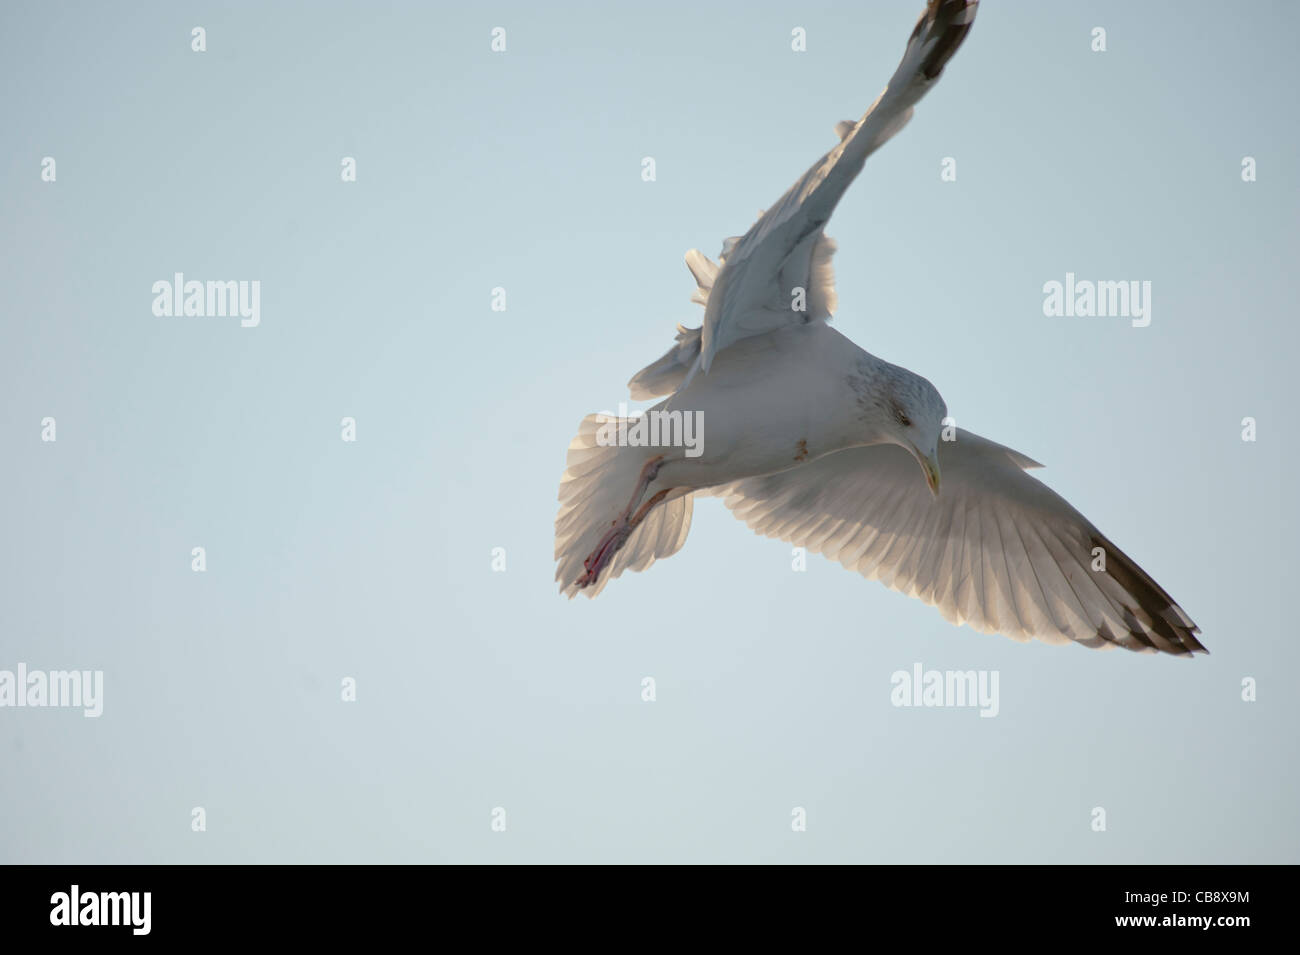 Seagull in flight - Stock Image